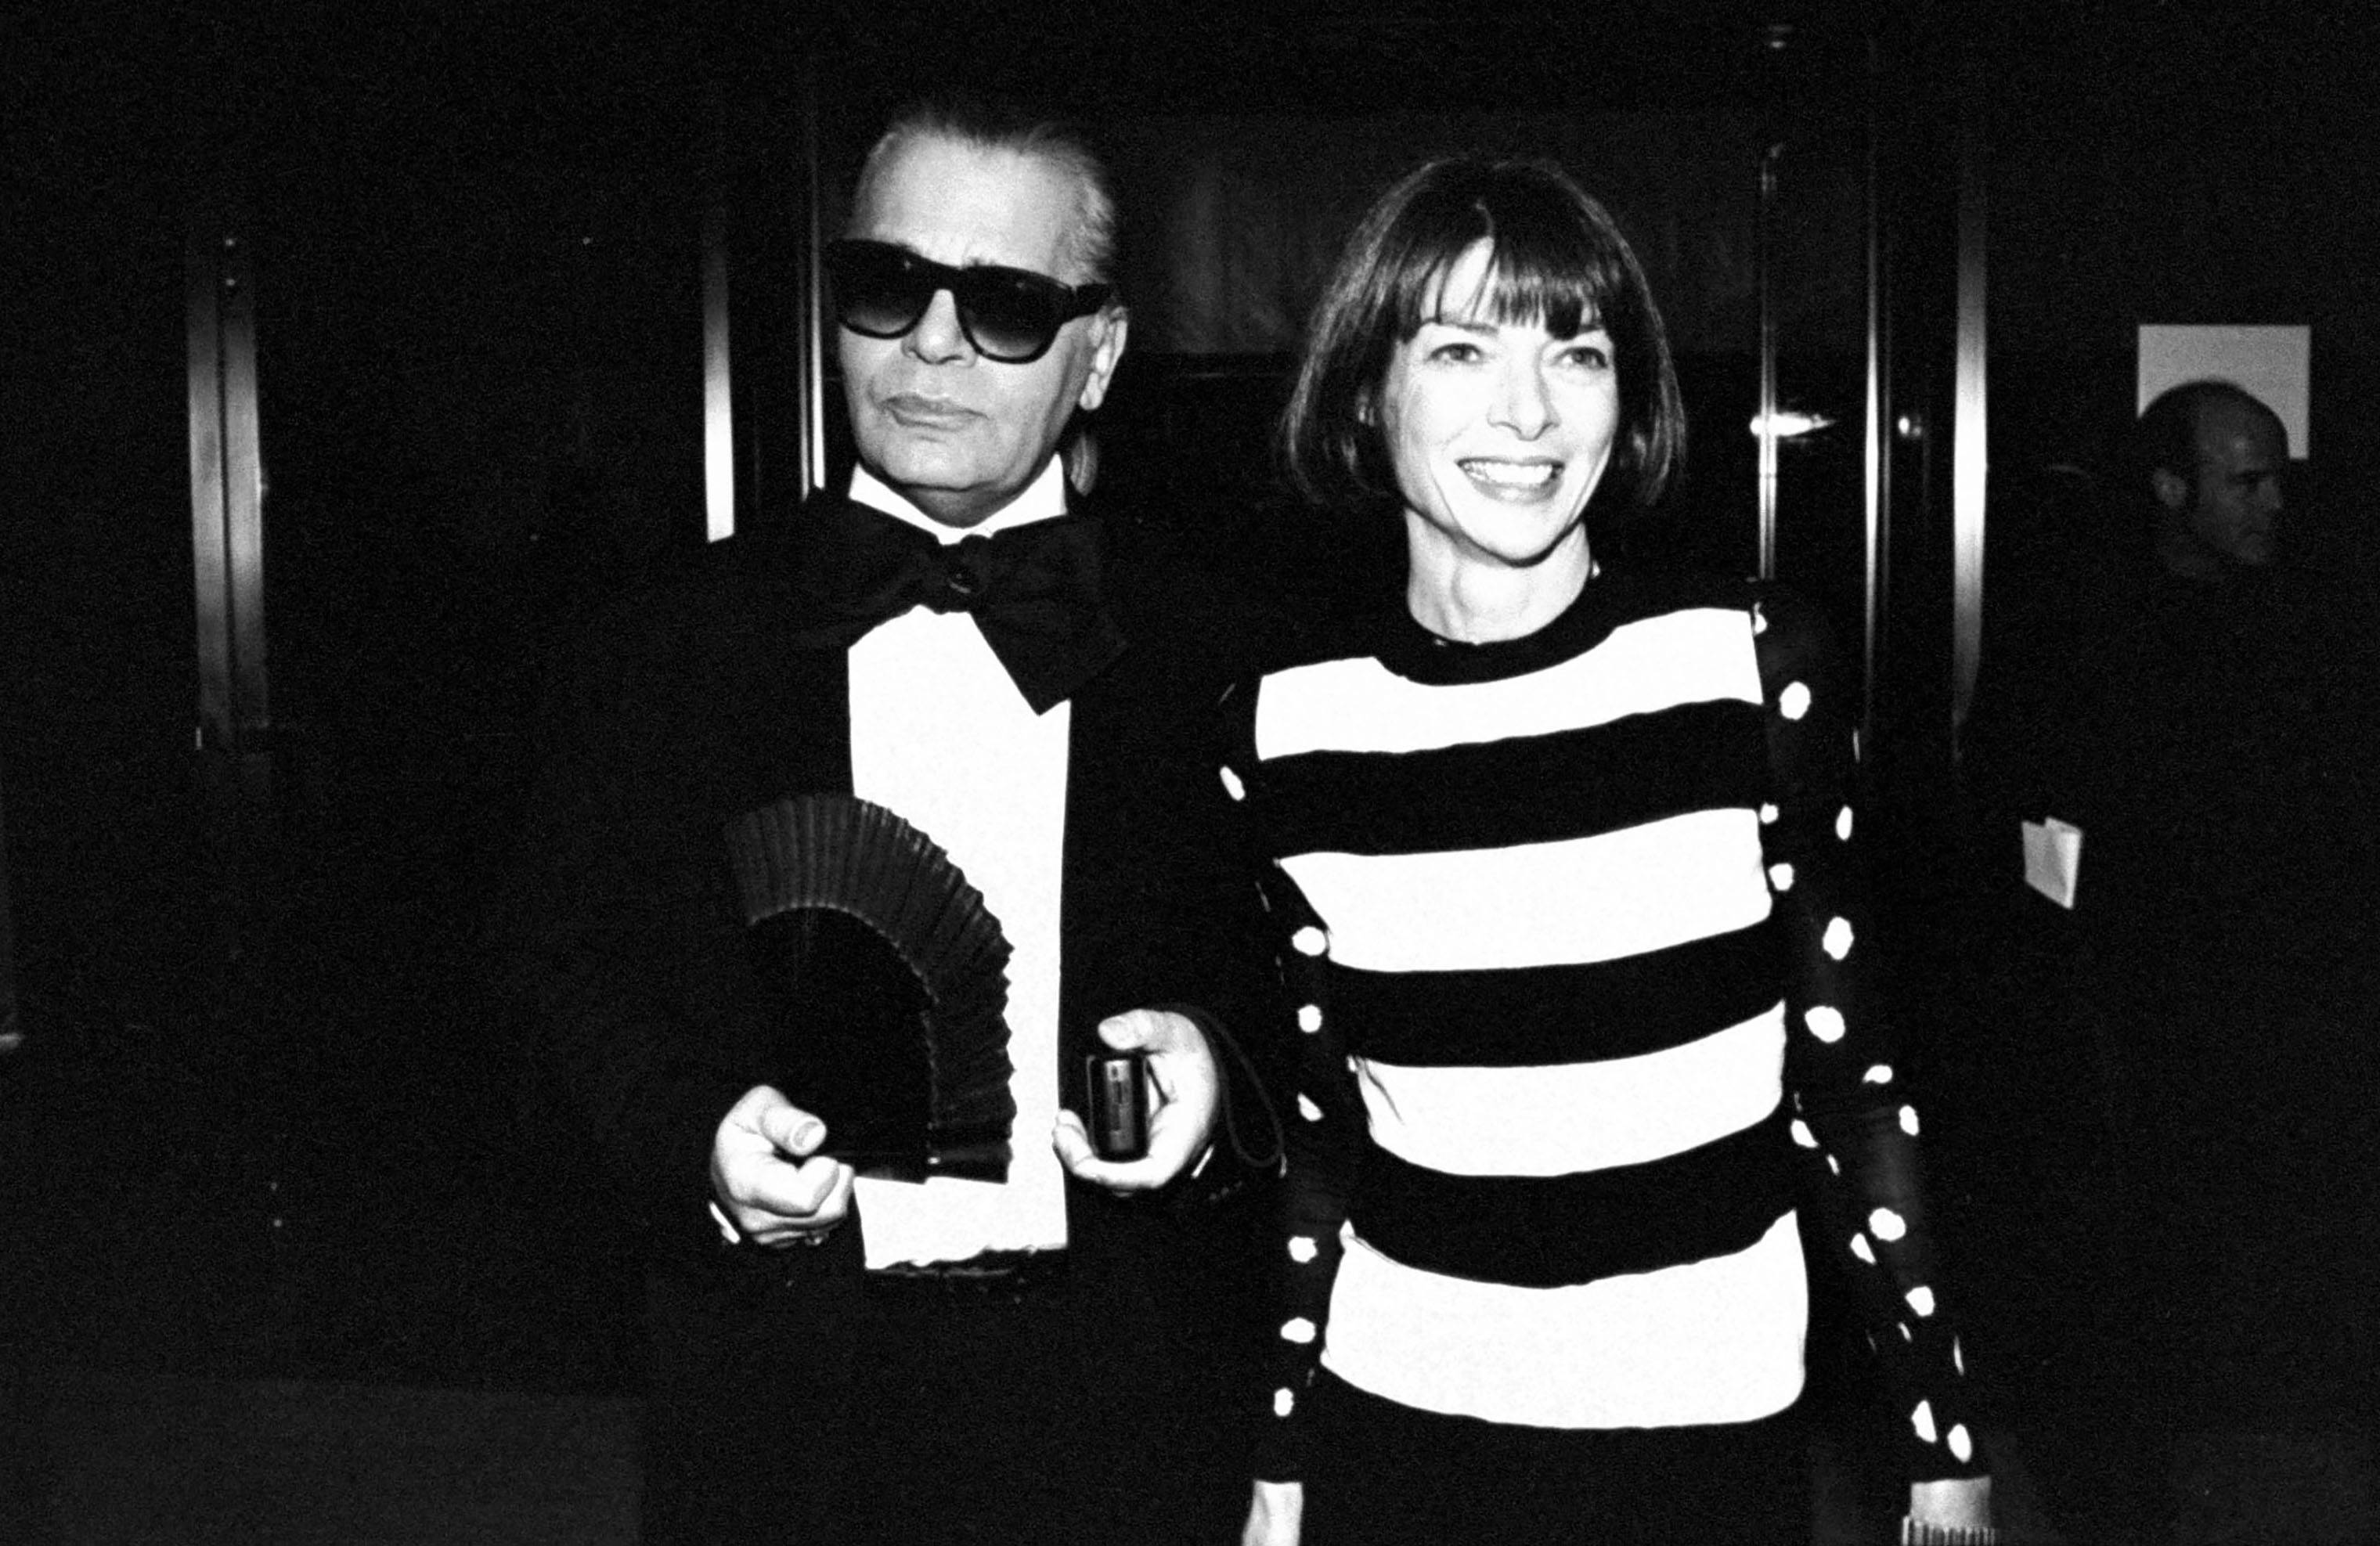 Fashion designer Karl Lagerfeld and Anna Wintour circa 1993.